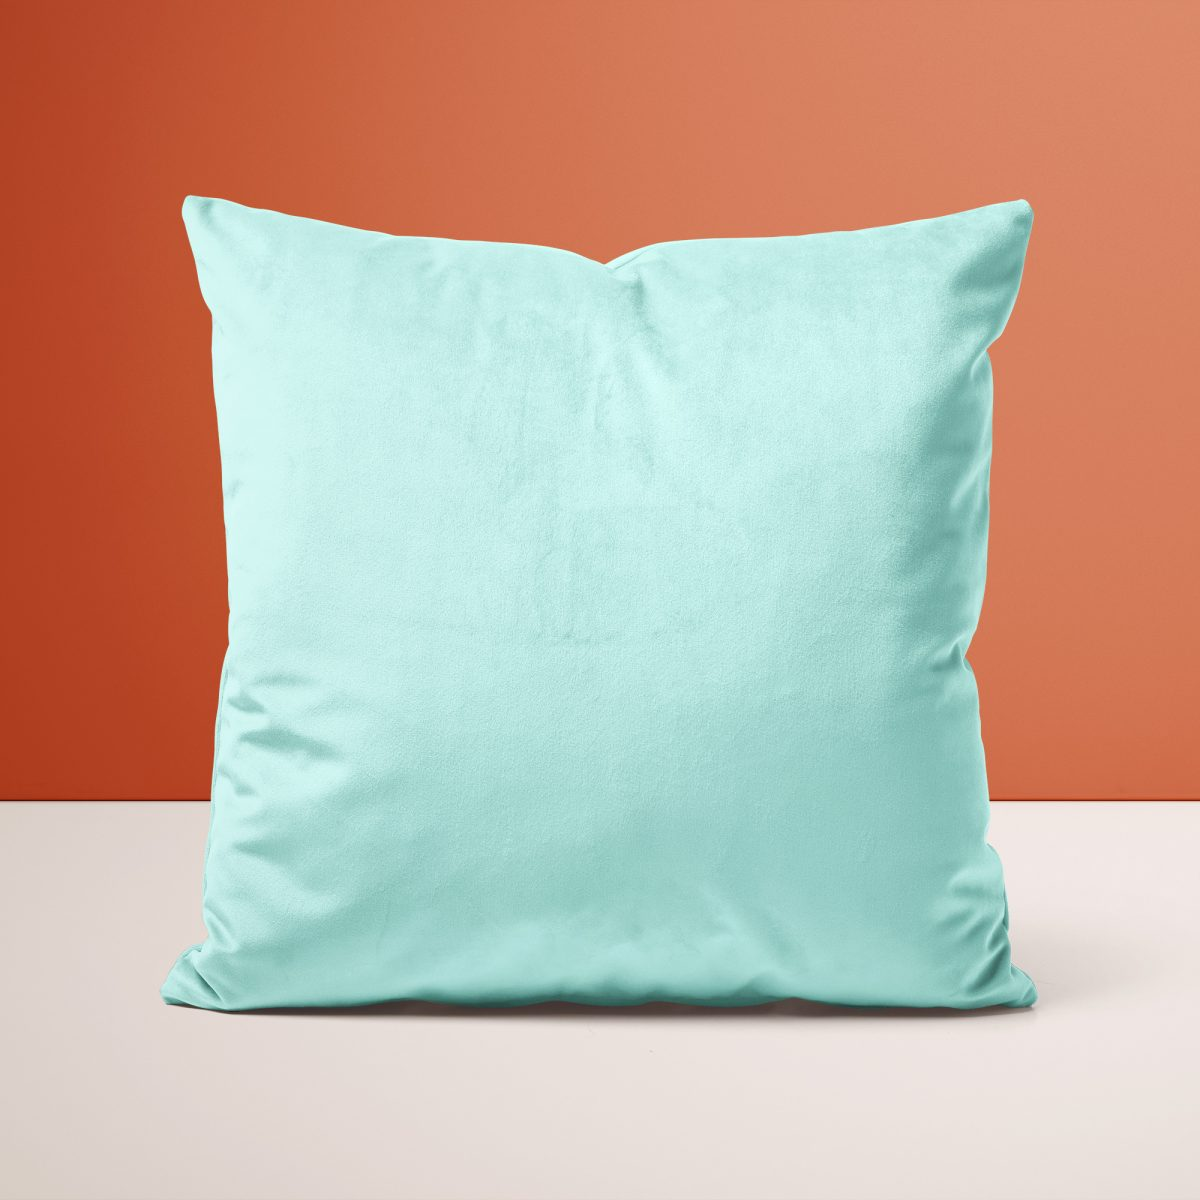 duck-egg-green-covers-of-the-rainbow-1